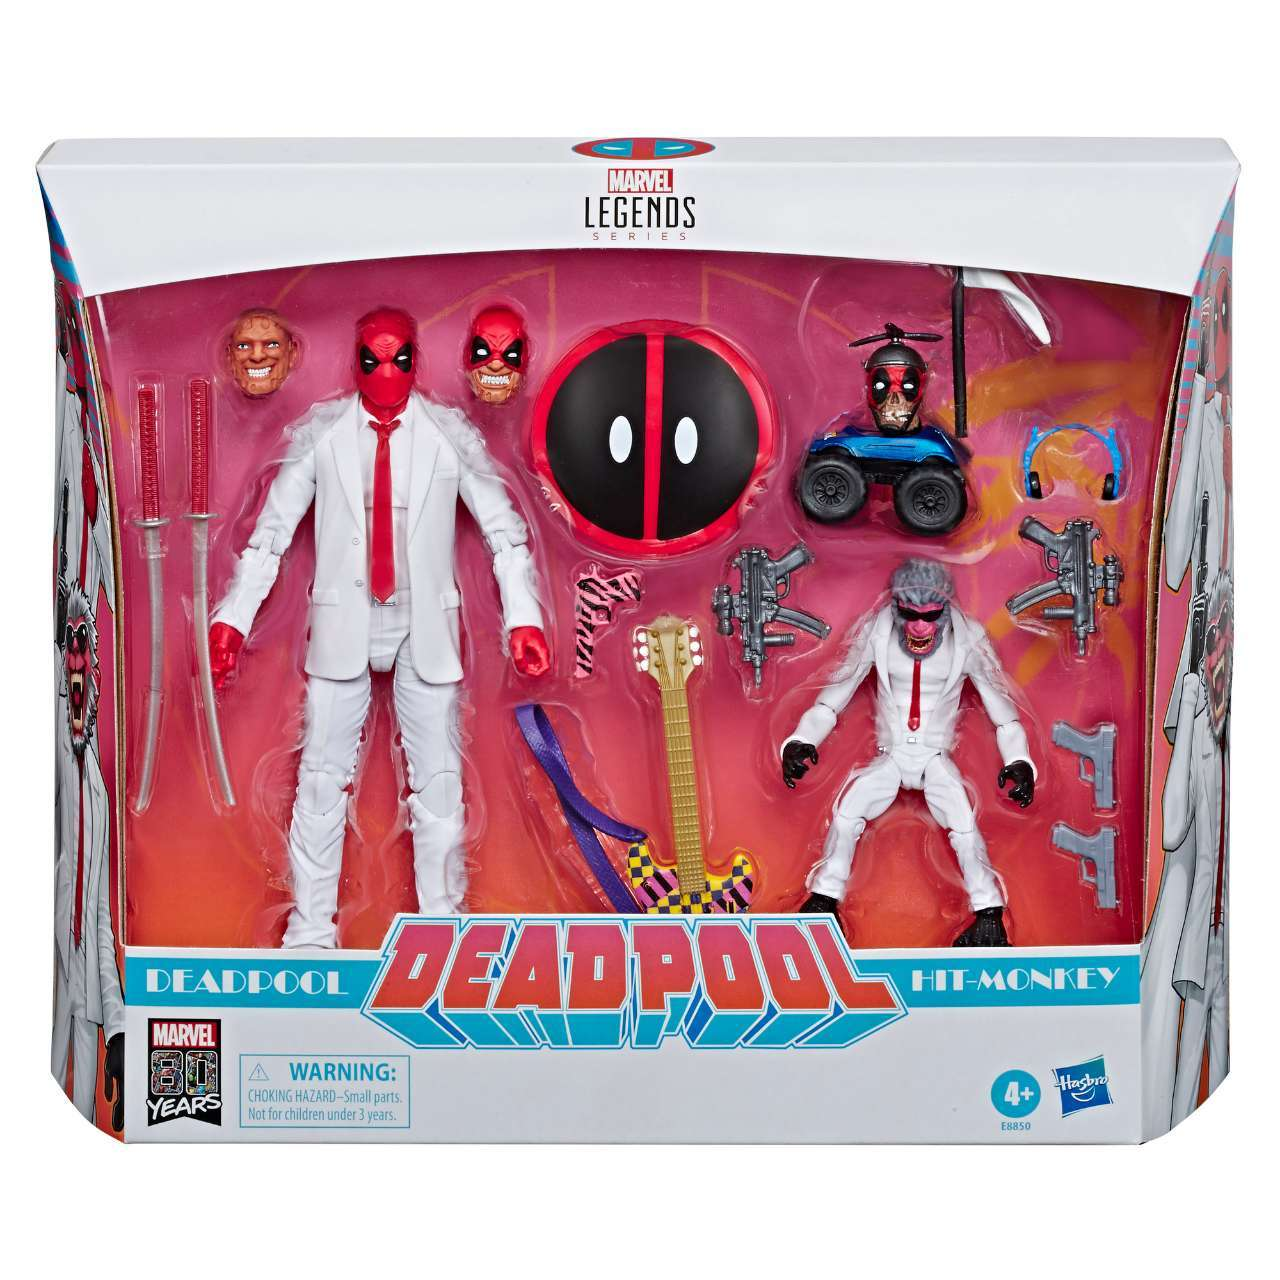 HASBRO MARVEL LEGENDS SERIES 80TH ANNIVERSARY 6-INCH DEADPOOL & HIT MONKEY 2-PACK (in pck)